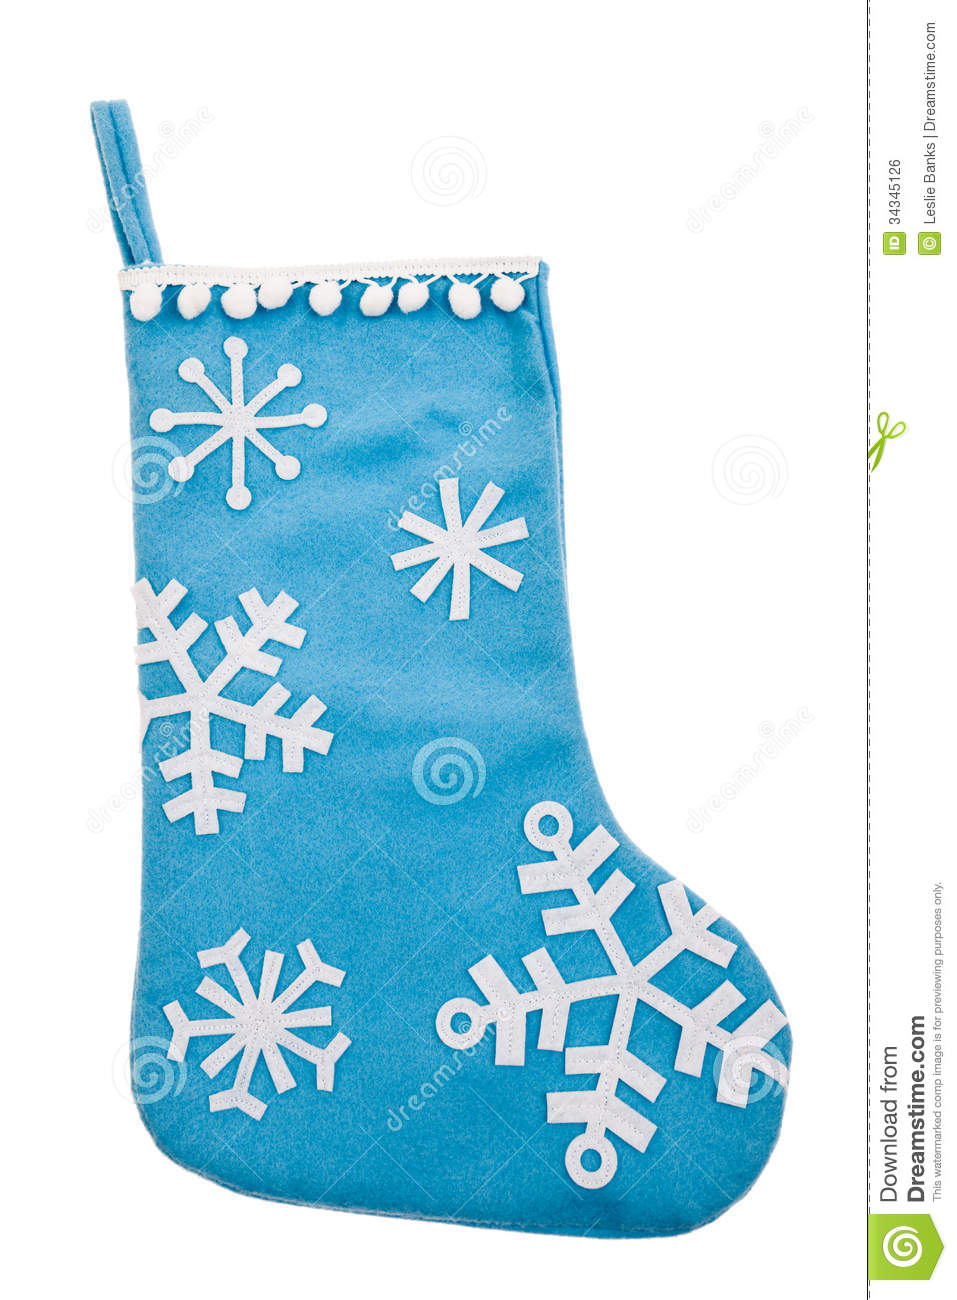 Blue Snowflake Christmas Stocking Royalty Free Stock Image - Image ...